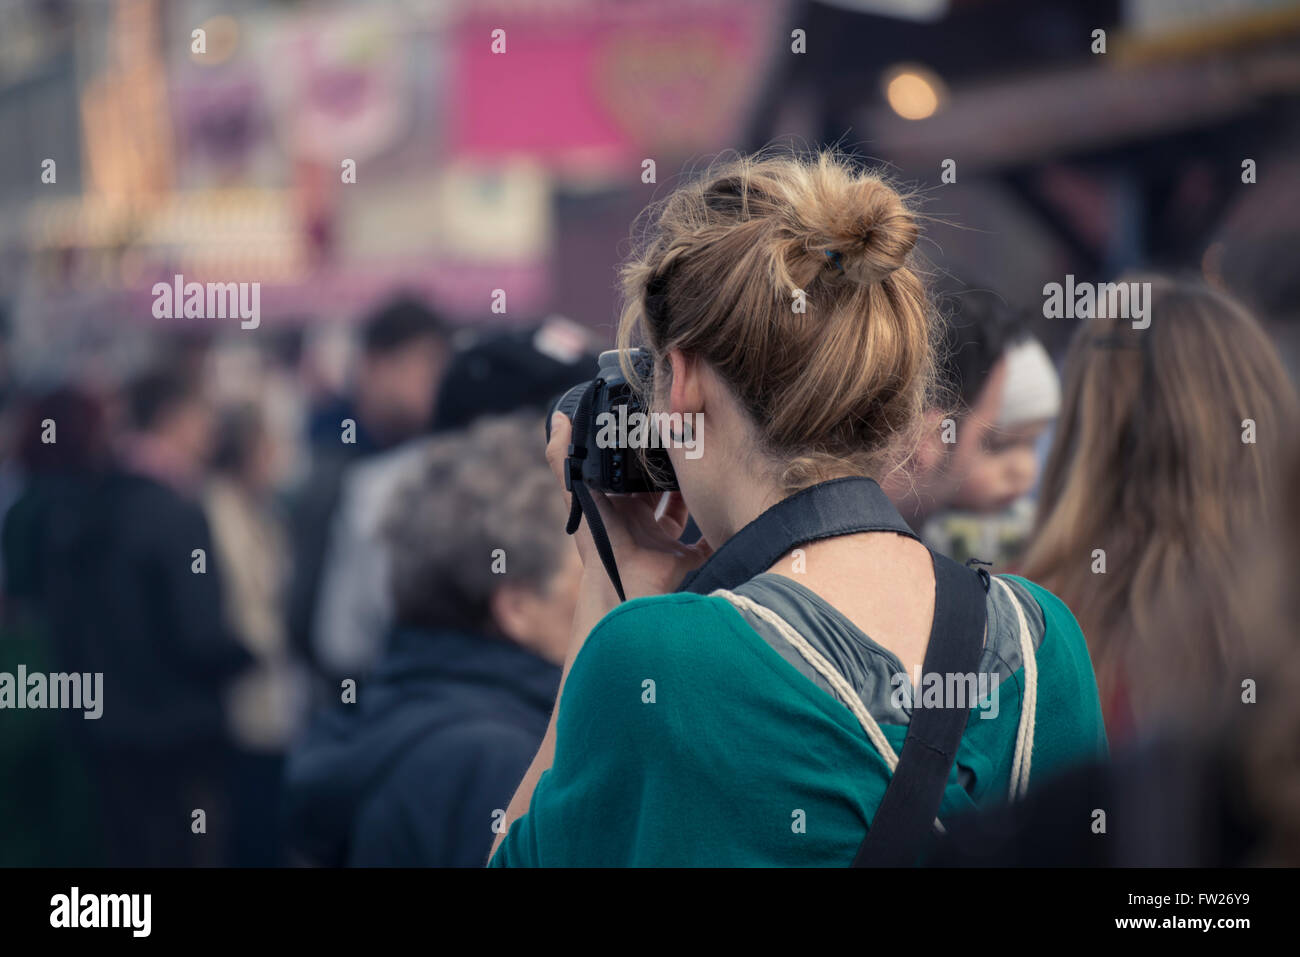 girl taking pictures at Oktorberfest - Stock Image